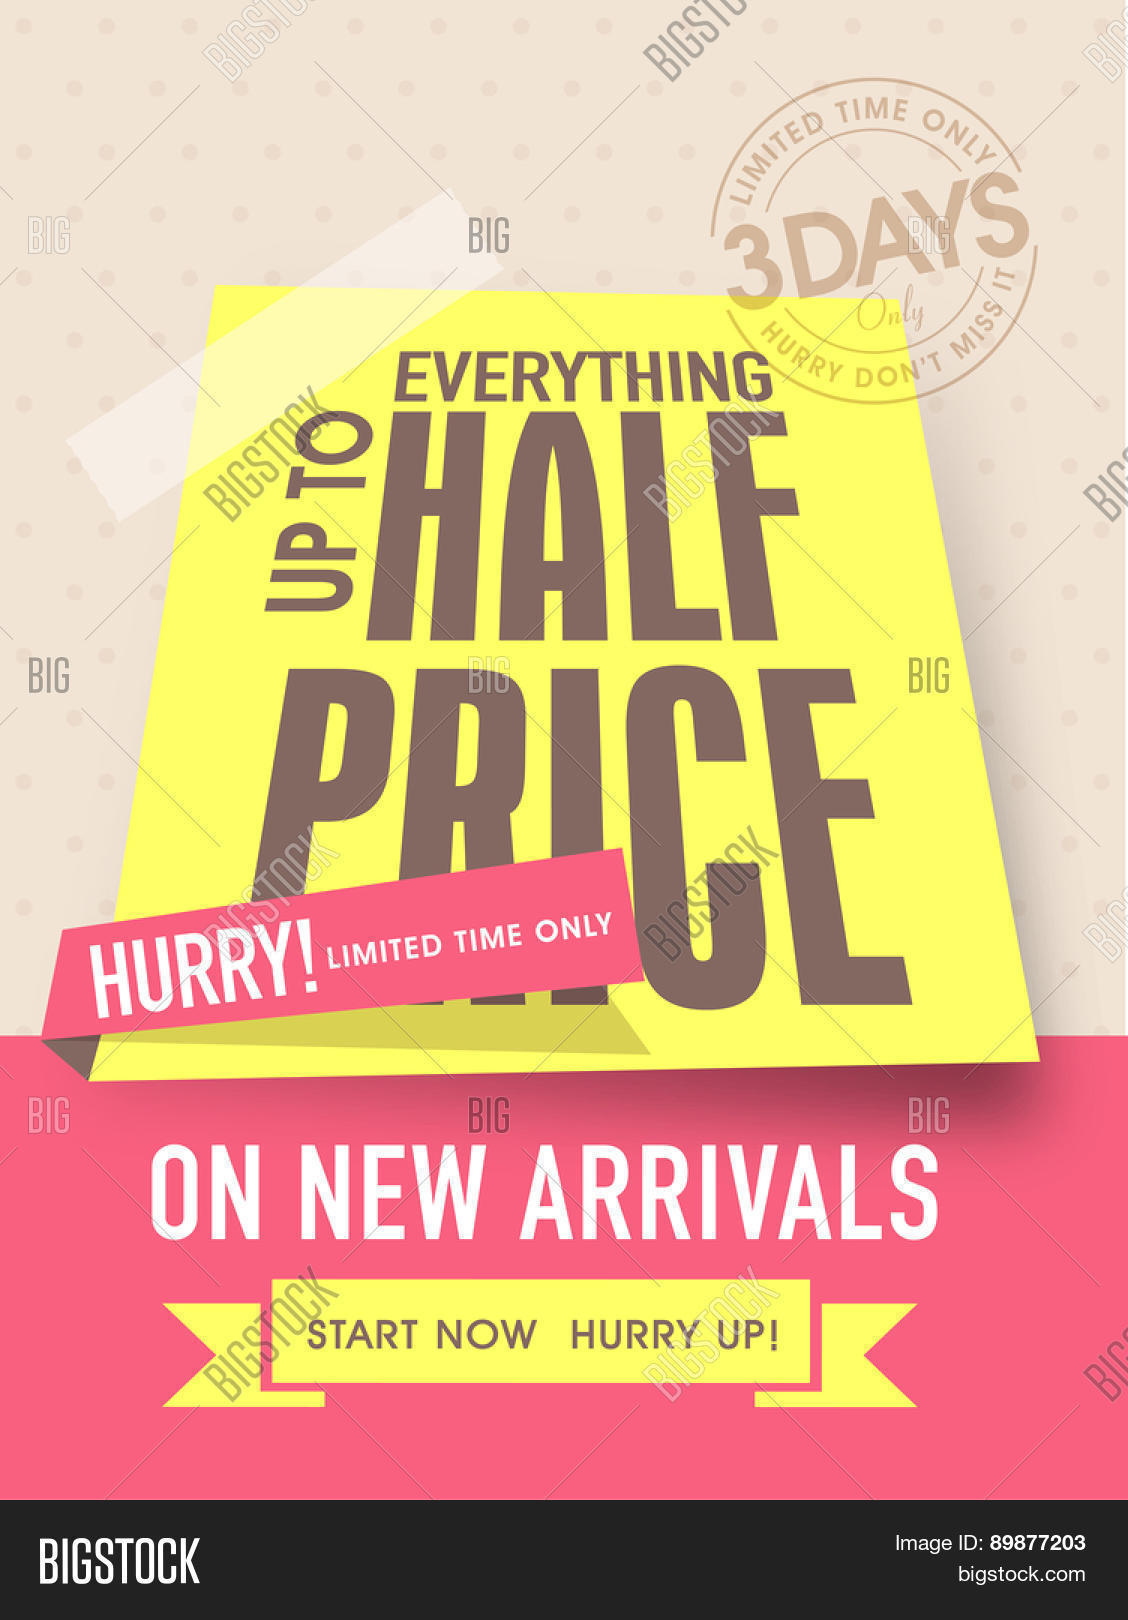 limited time flyer banner or template half price limited time flyer banner or template half price discount on new arrivals